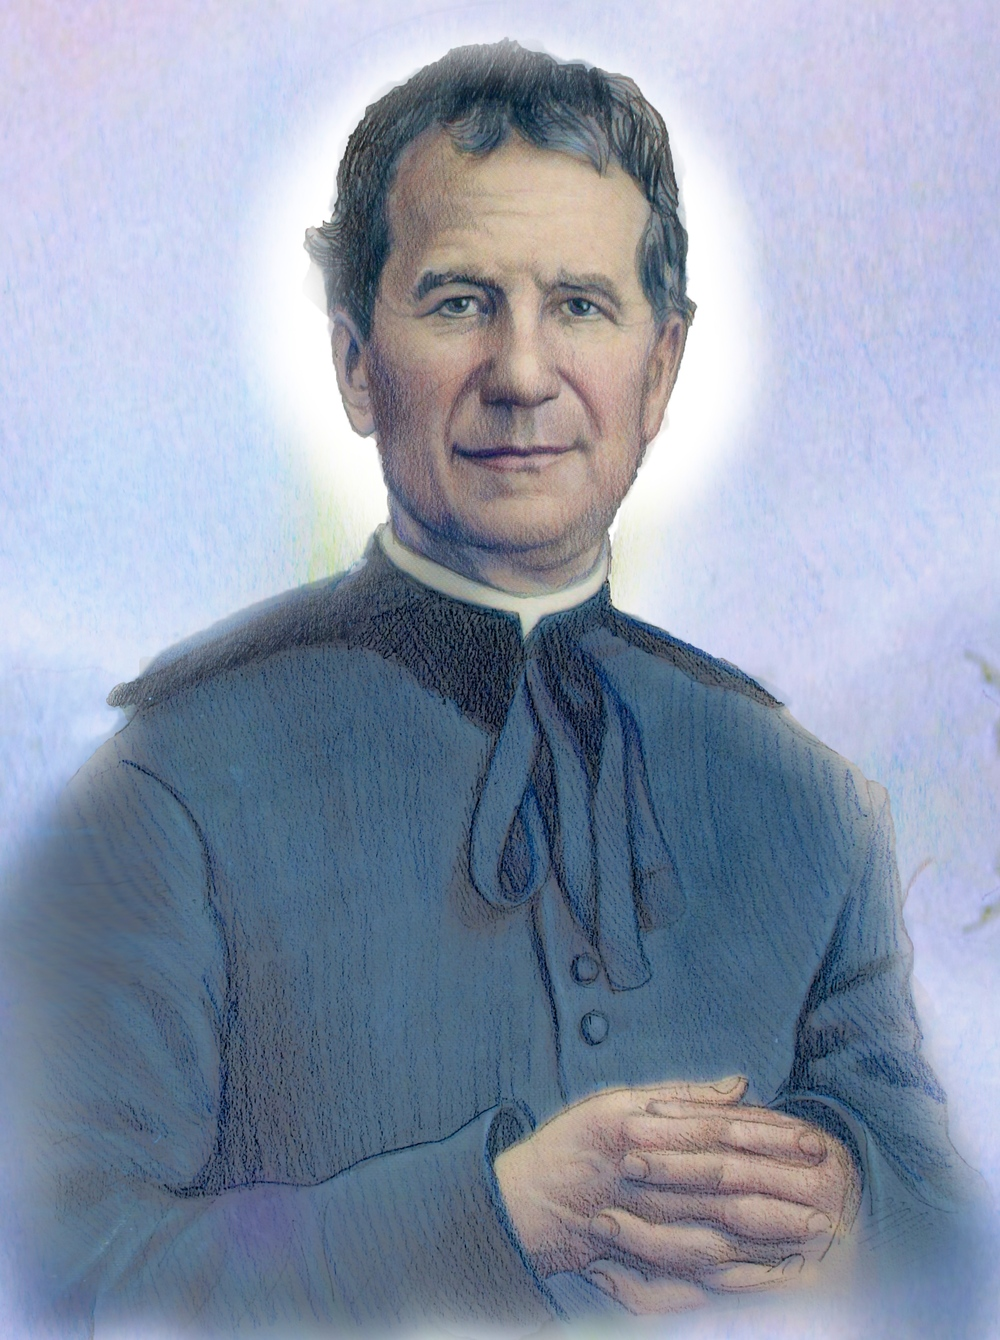 the life of st john bosco He was canonized in 1934 by his personal friend pope pius xi his feast day is january 31 to learn more about the life of st john bosco.